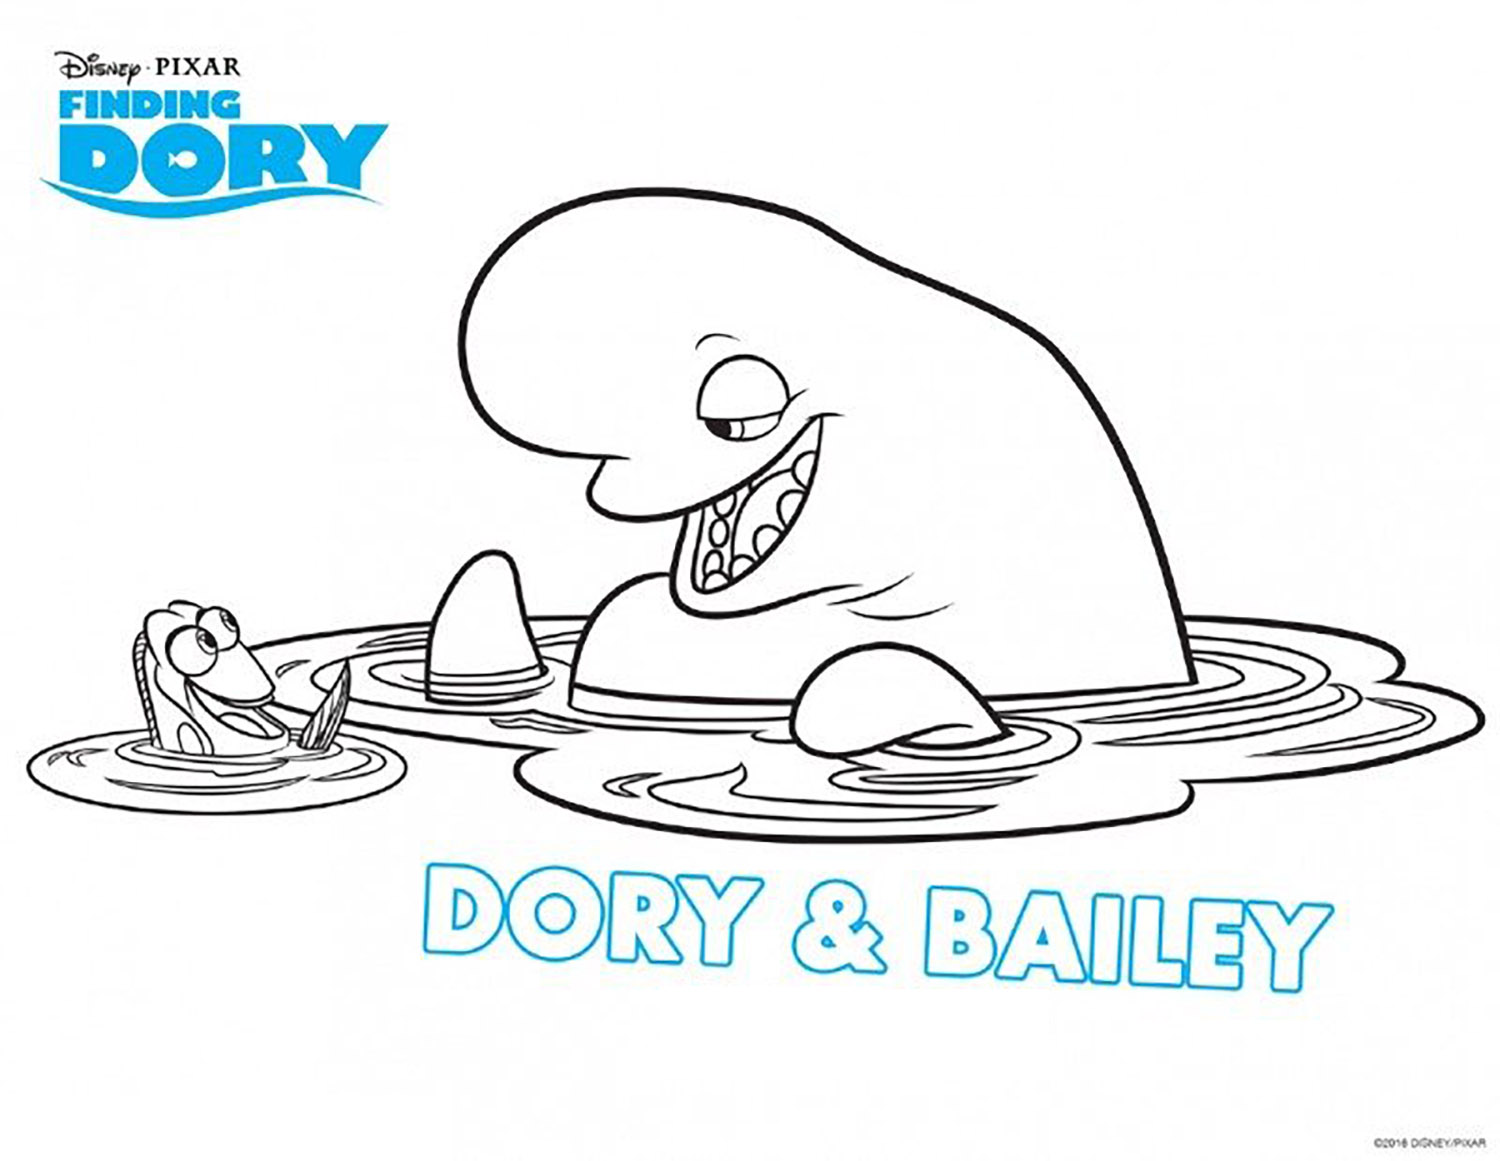 Simple Finding Dory coloring page for children : Dory & Bailey